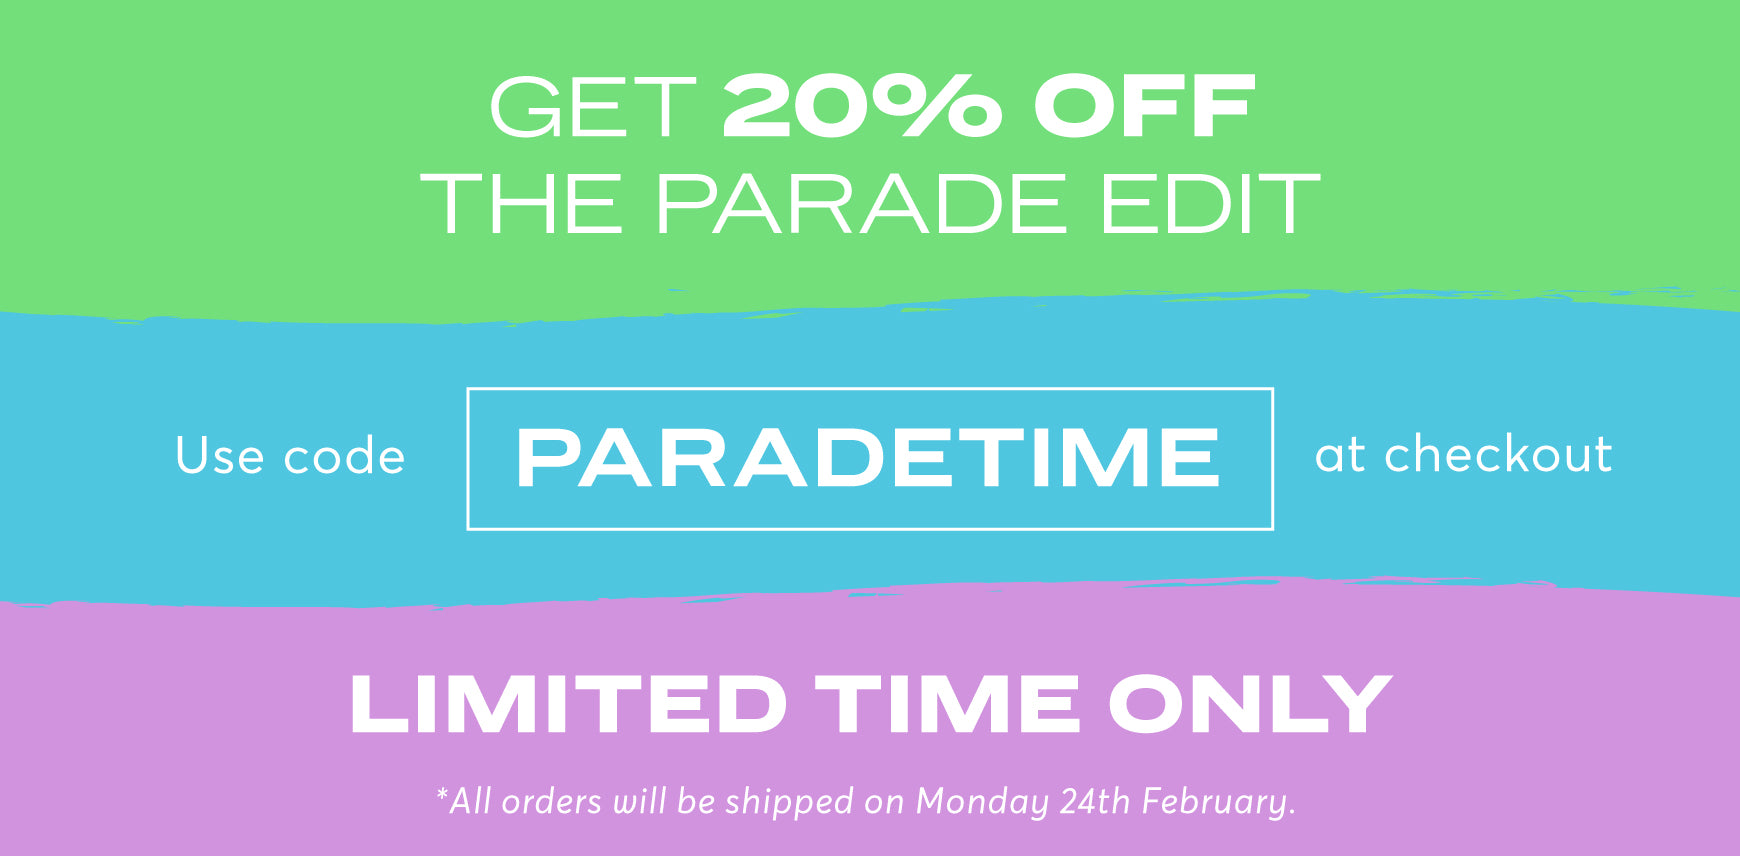 Get 20% OFF the Parade Edit. Use code PARADETIME at checkout. Limited time only.